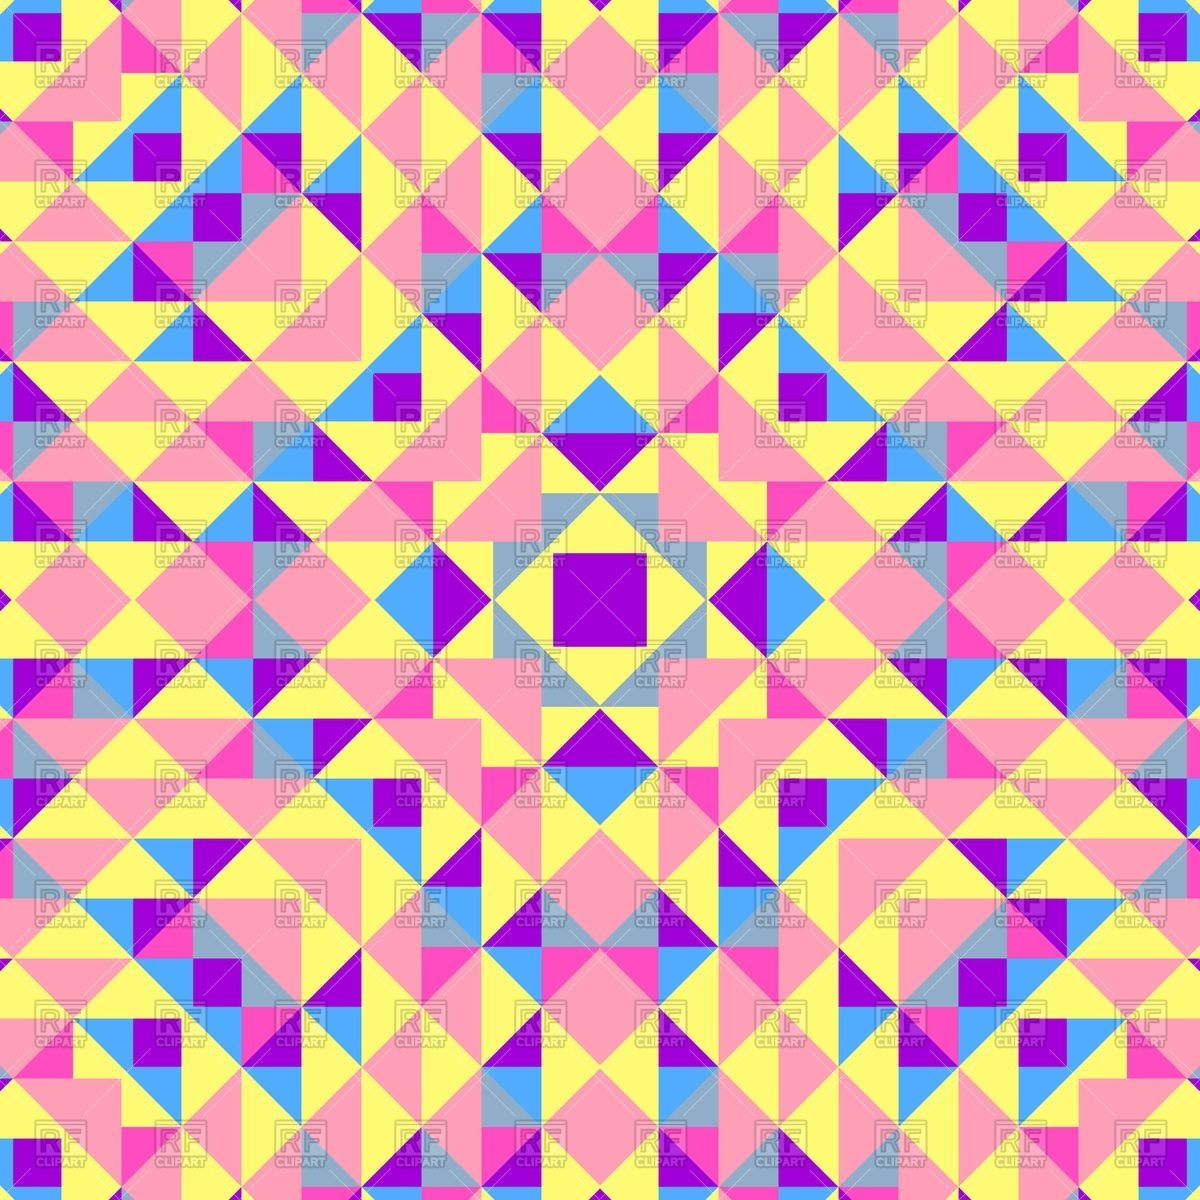 Abstract geometric patterns.